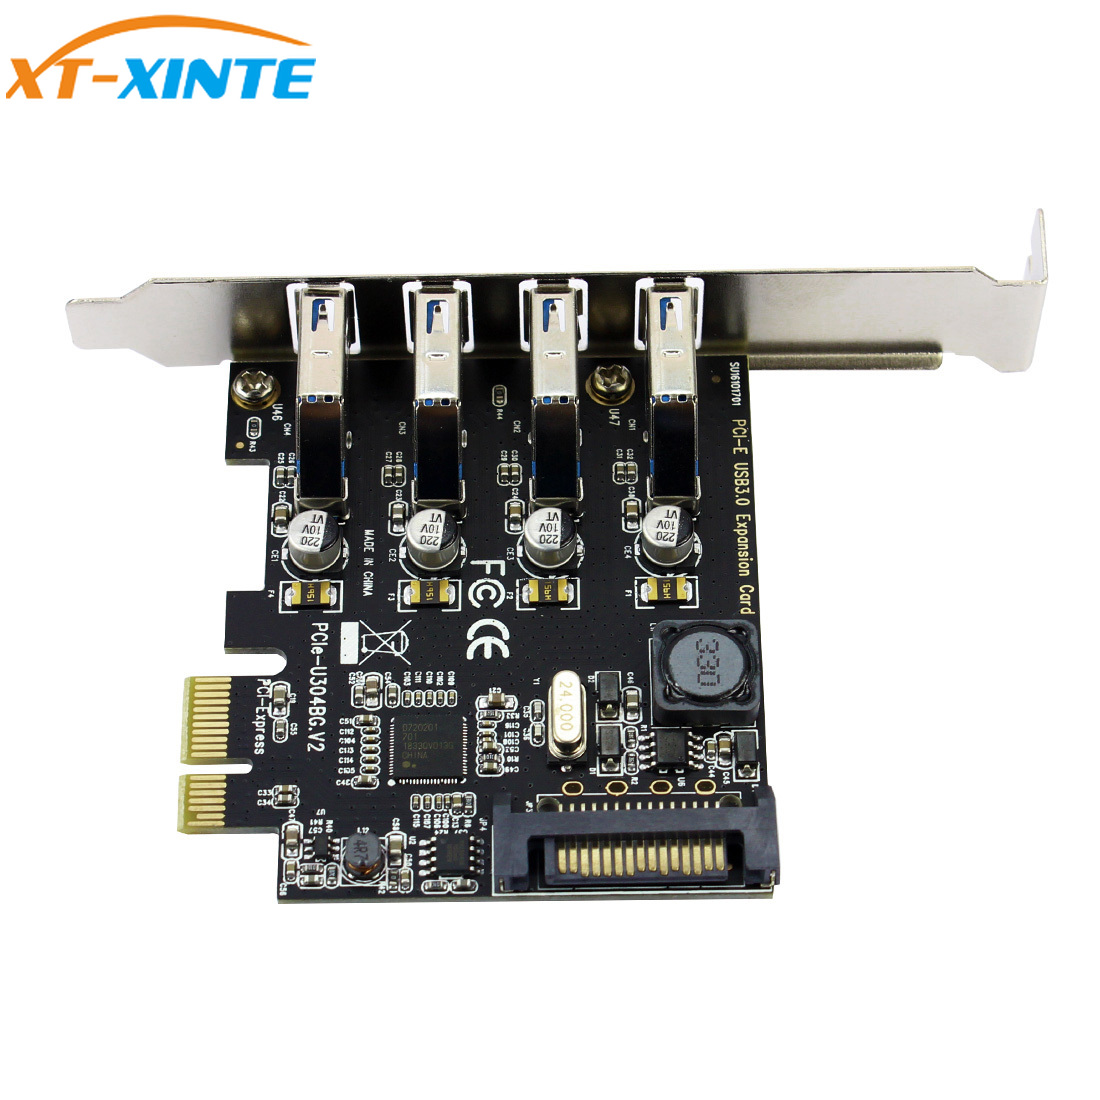 4 Port <font><b>PCI</b></font>-E to <font><b>USB</b></font> <font><b>3.0</b></font> HUB <font><b>PCI</b></font> <font><b>Express</b></font> Expansion Card Adapter 5 Gbps Speed image